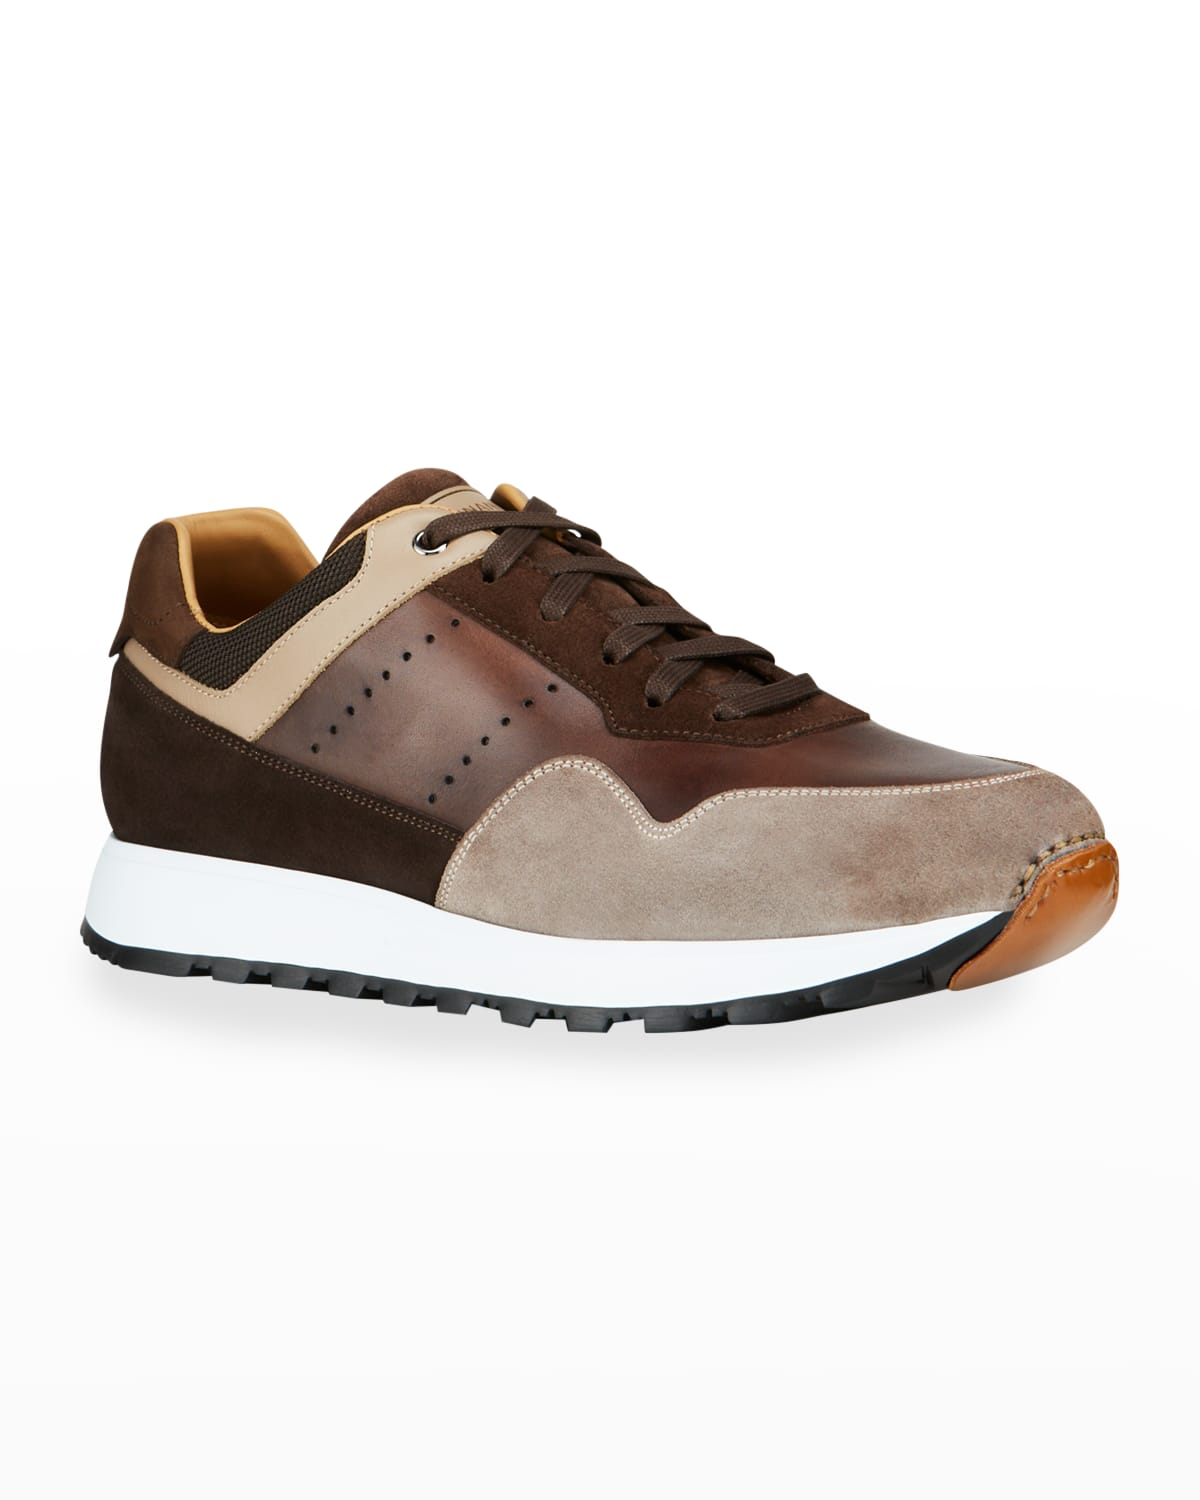 Men's Earthe Tone Mix-Leather Runner Sneakers